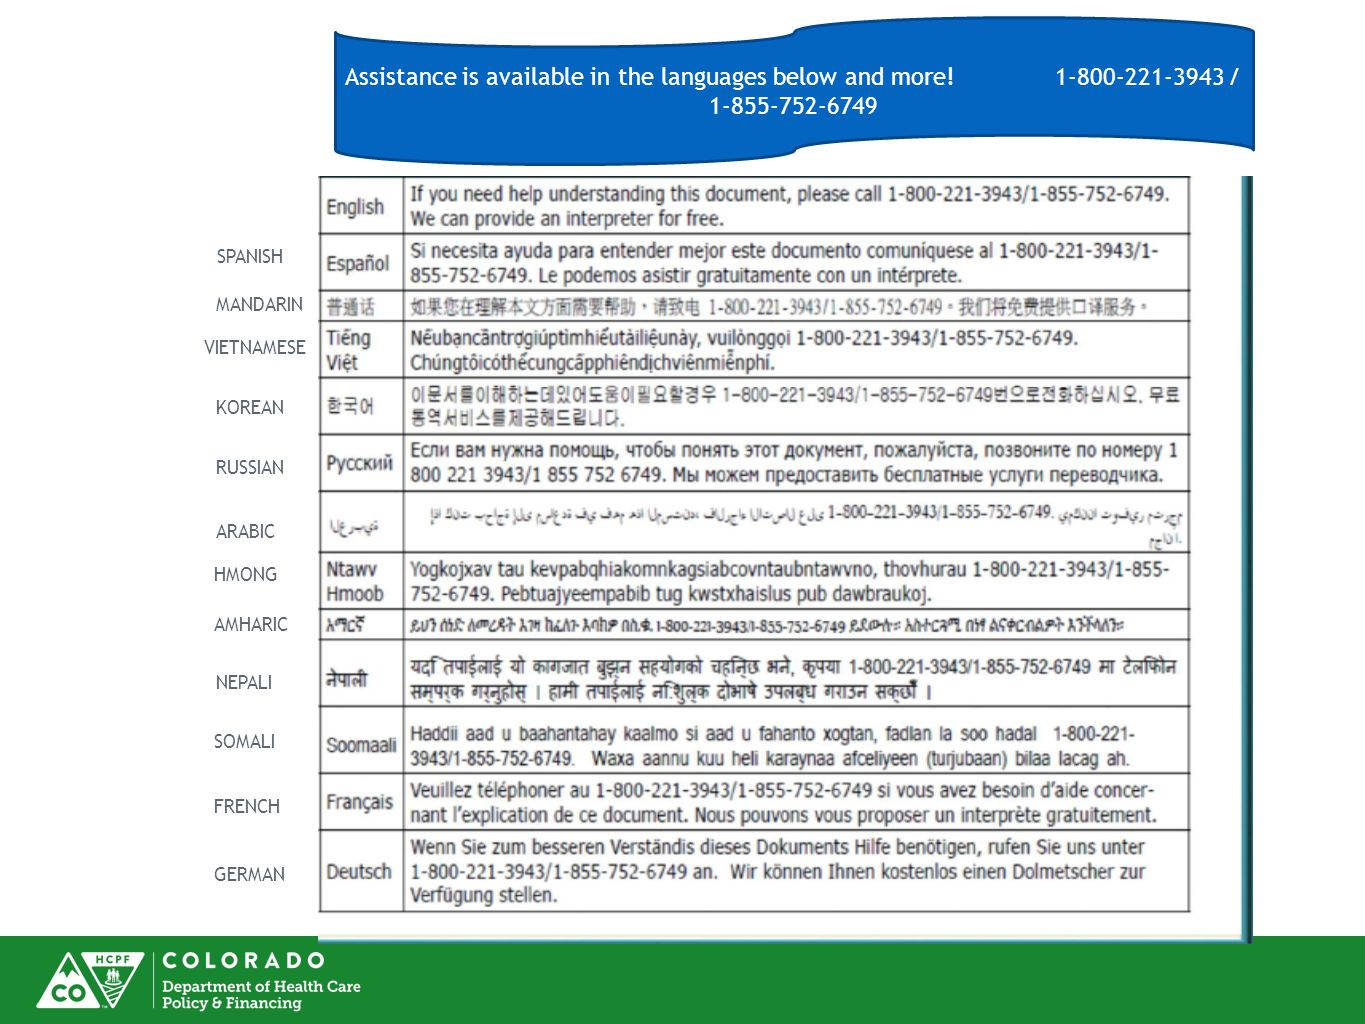 MANDARIN SOMALI SPANISH FRENCH VIETNAMESE GERMAN RUSSIAN KOREAN HMONG ARABIC NEPALI AMHARIC Assistance is available in the languages below and more.